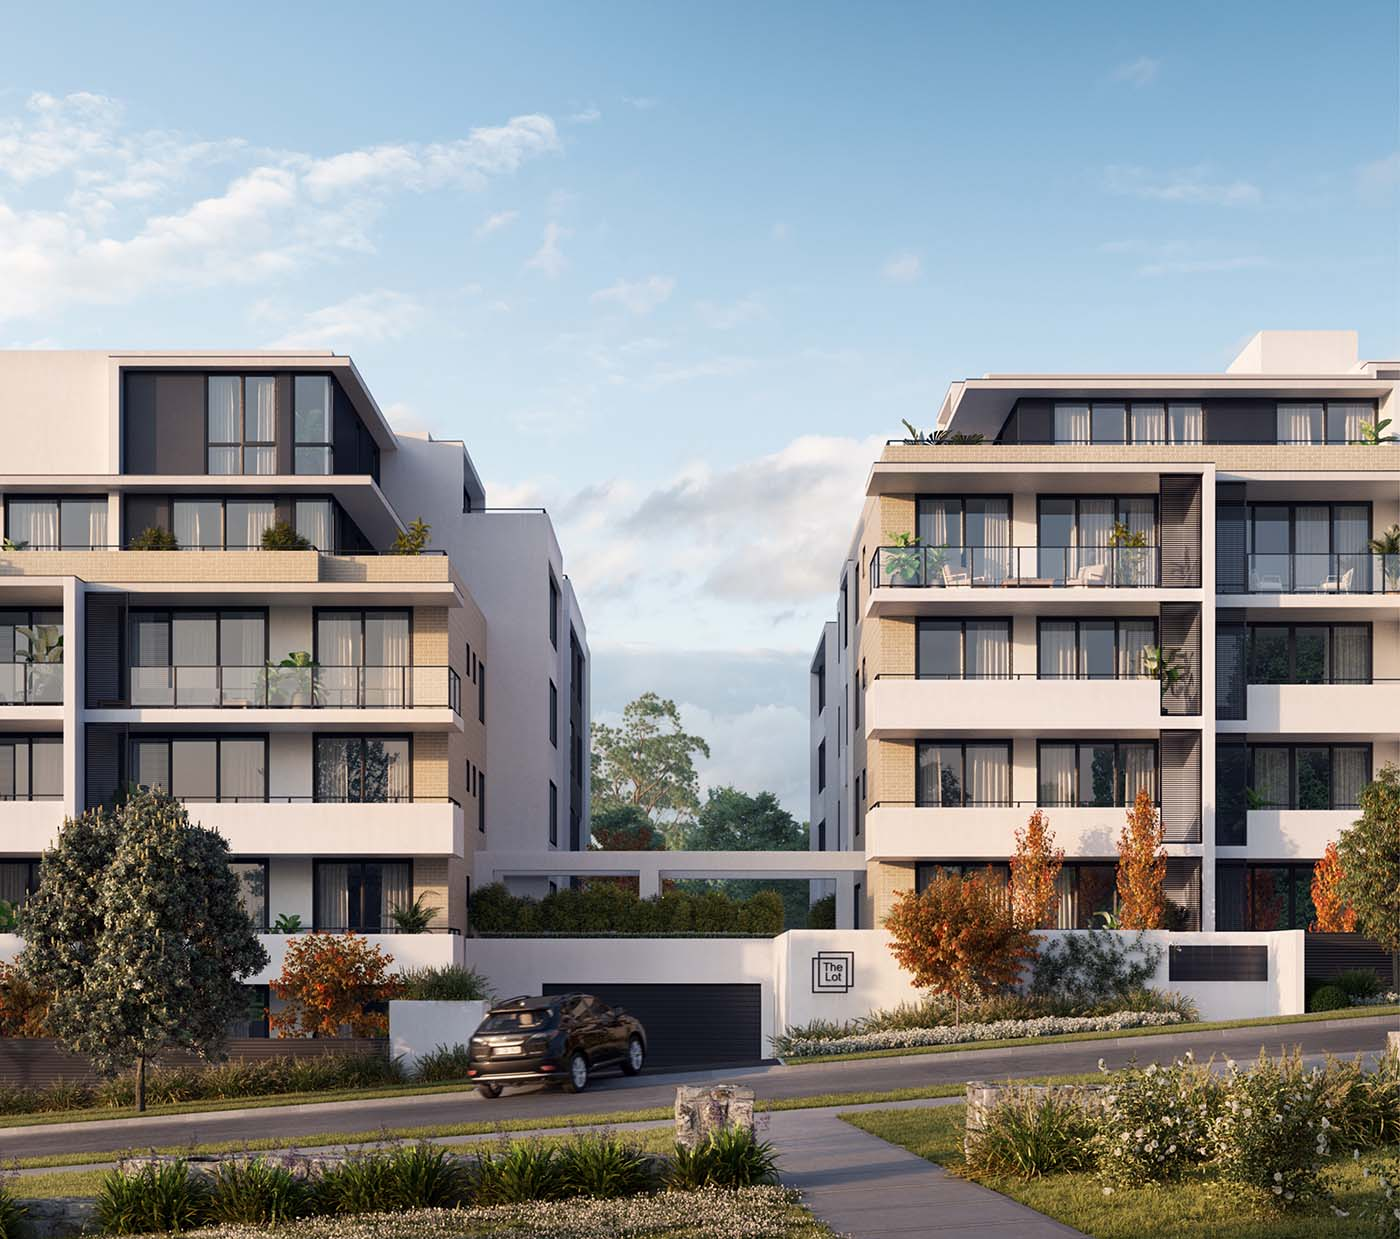 Residential apartments outdoor view with car entering in the parking